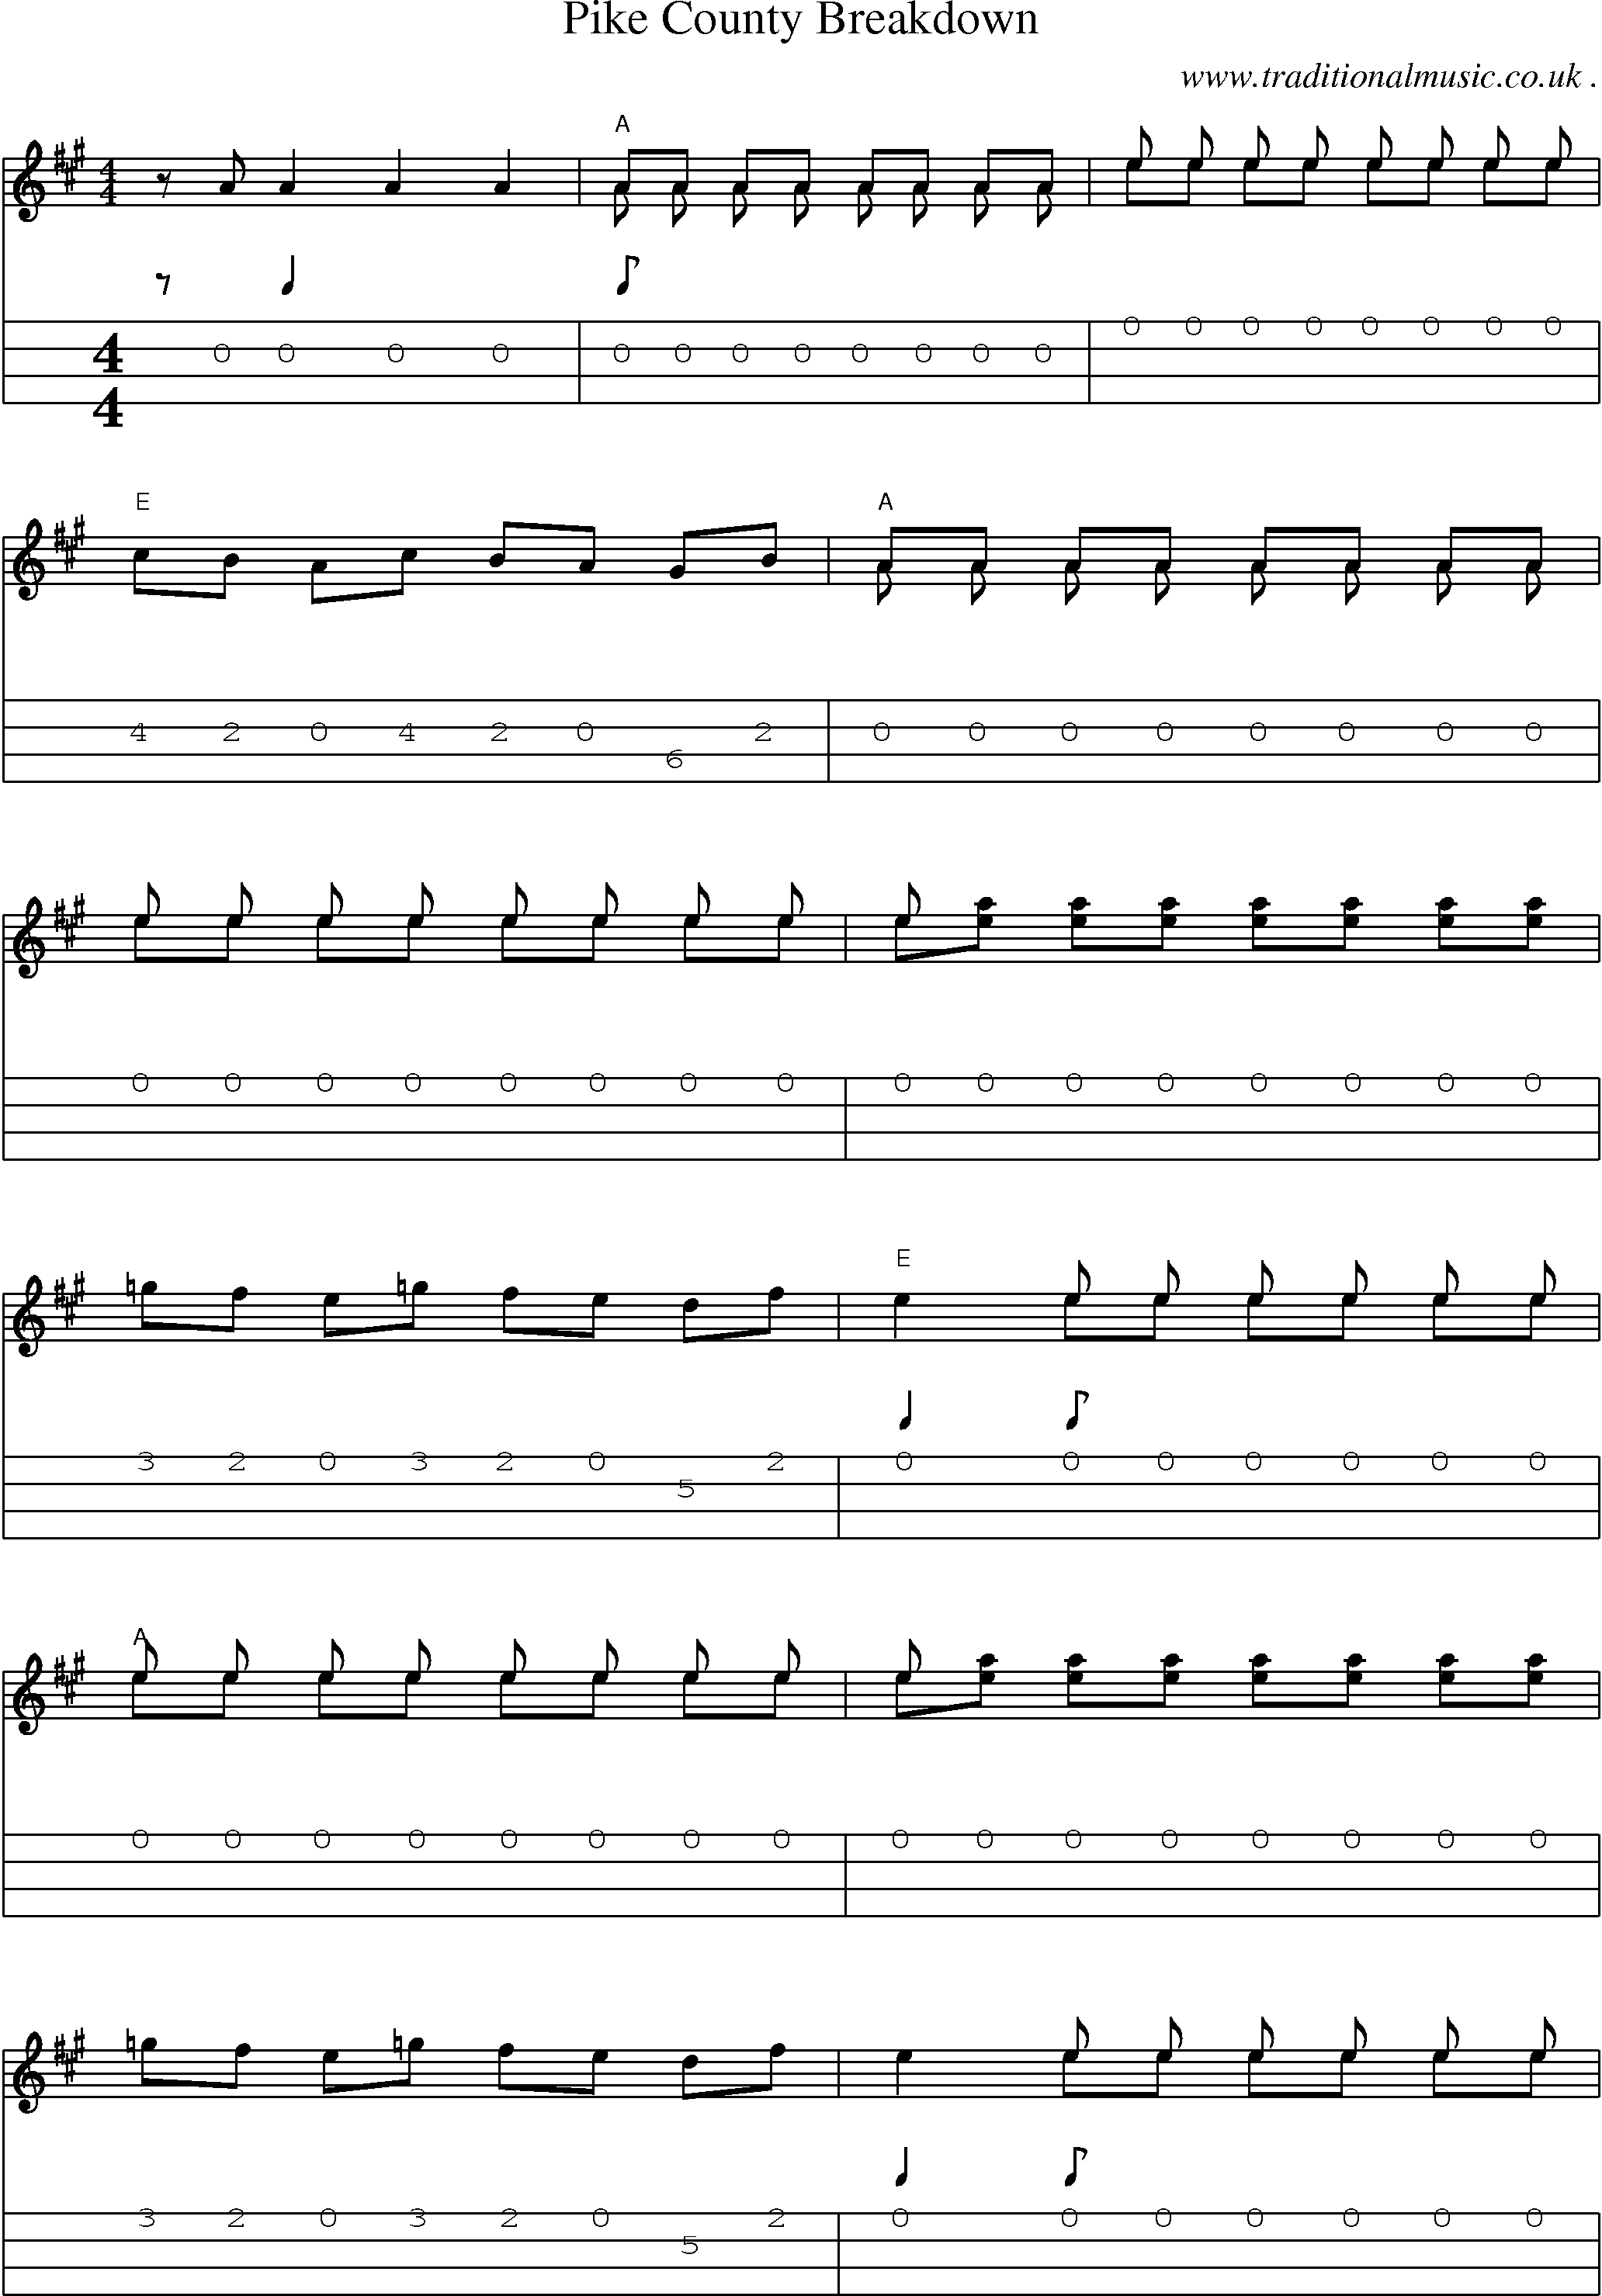 American Old Time Music Scores And Tabs For Mandolin Pike County